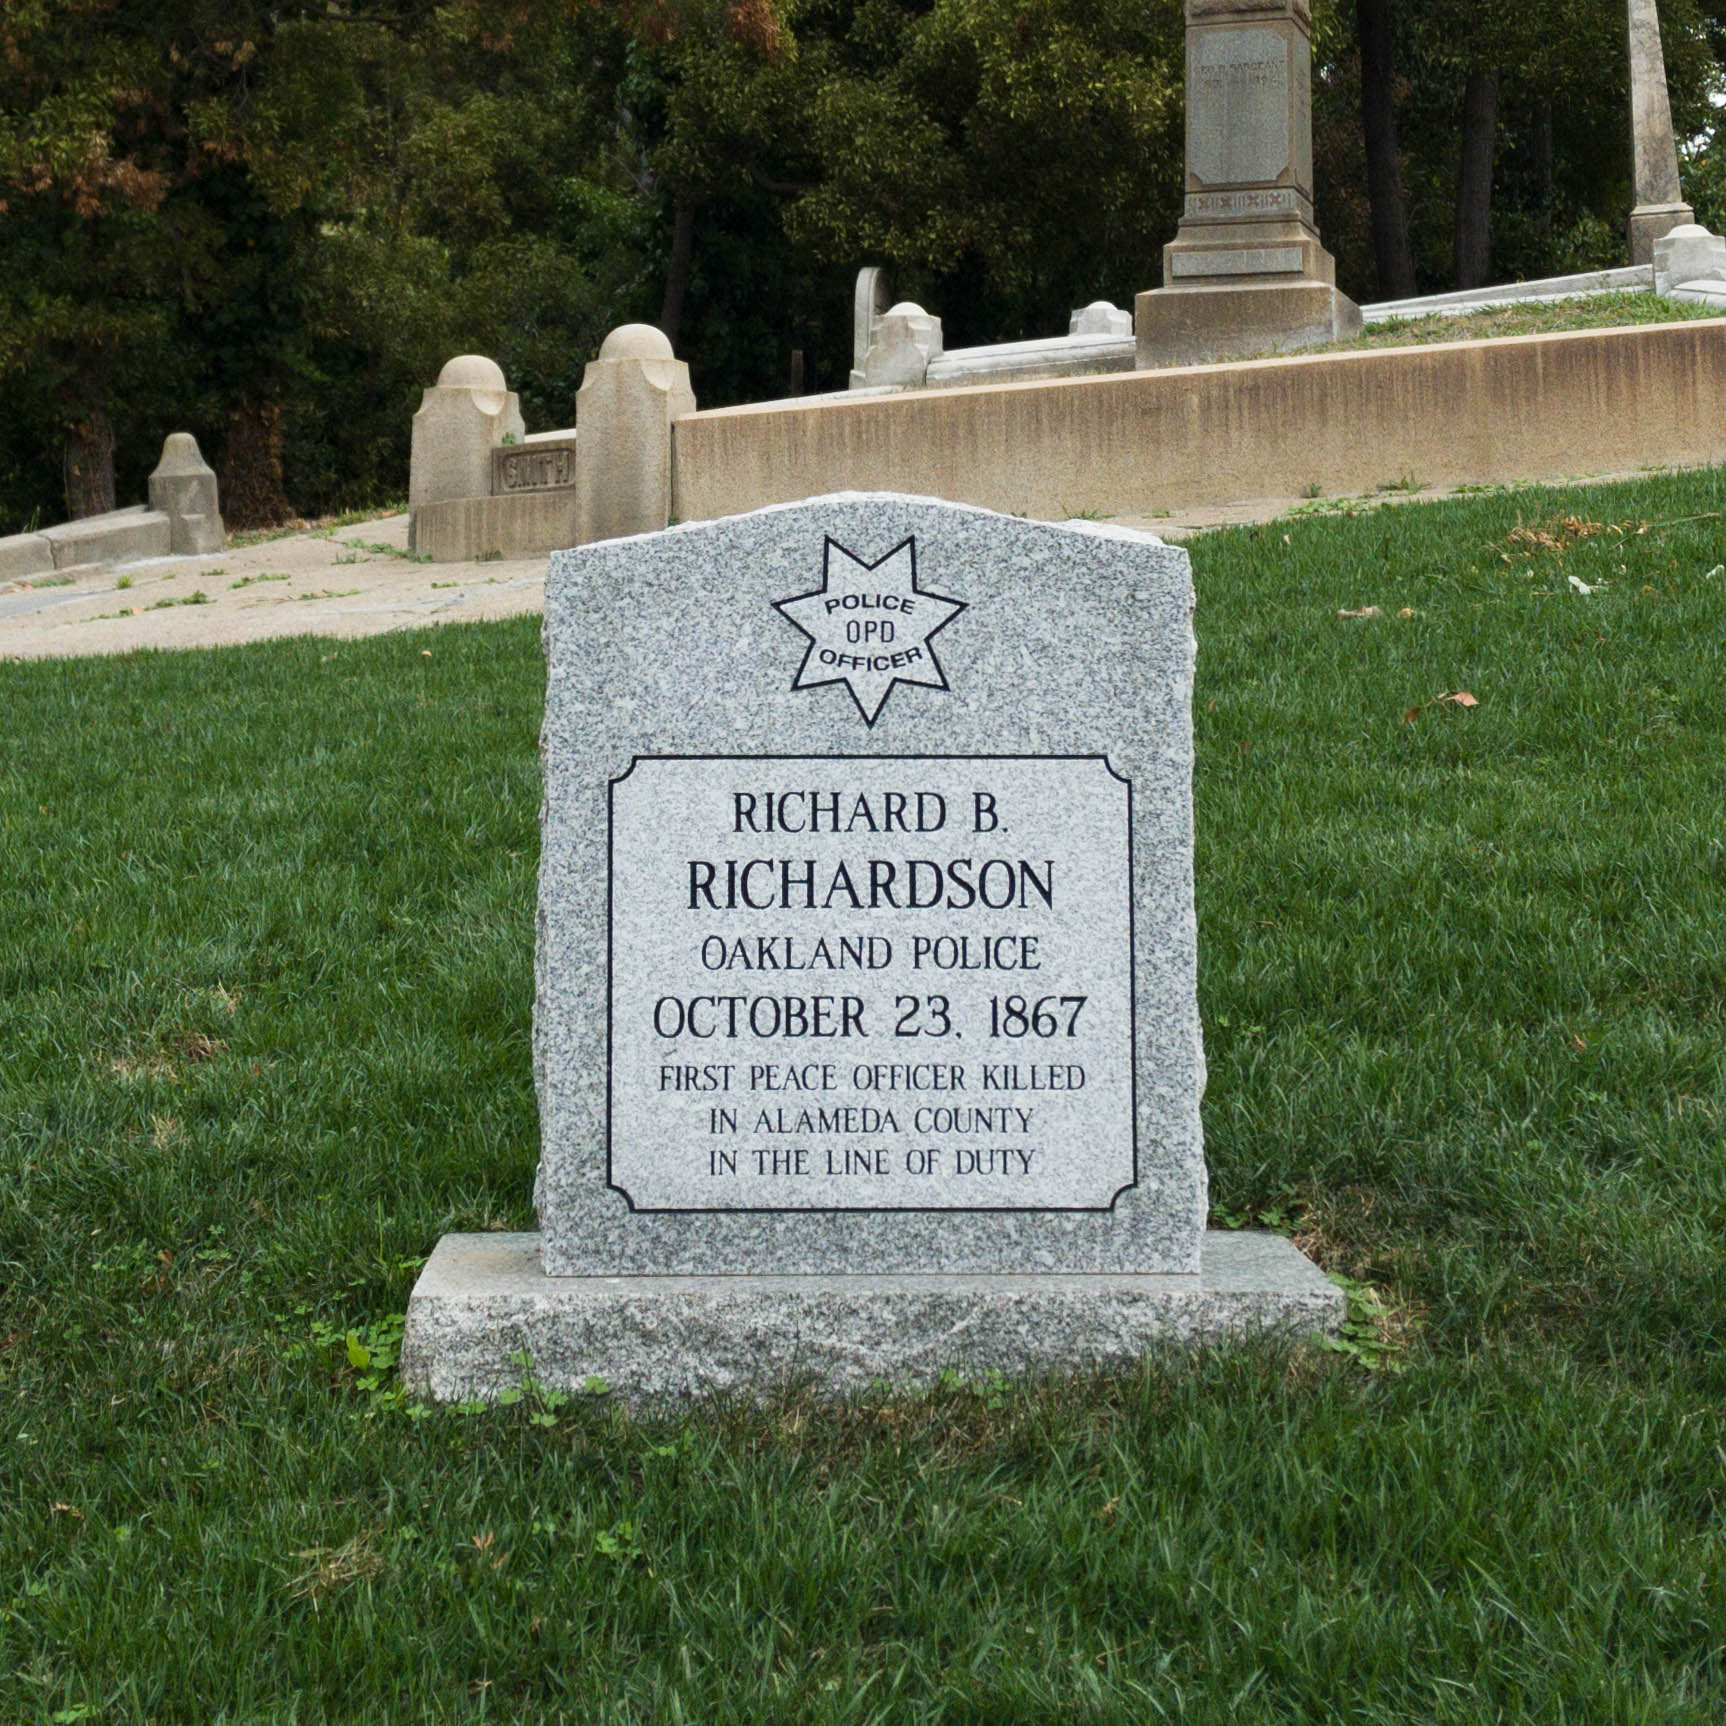 Mountain View cemetery, in honor of Richardson and in preparation for the Dedication, worked to resod the area surrounding Richardson's marker